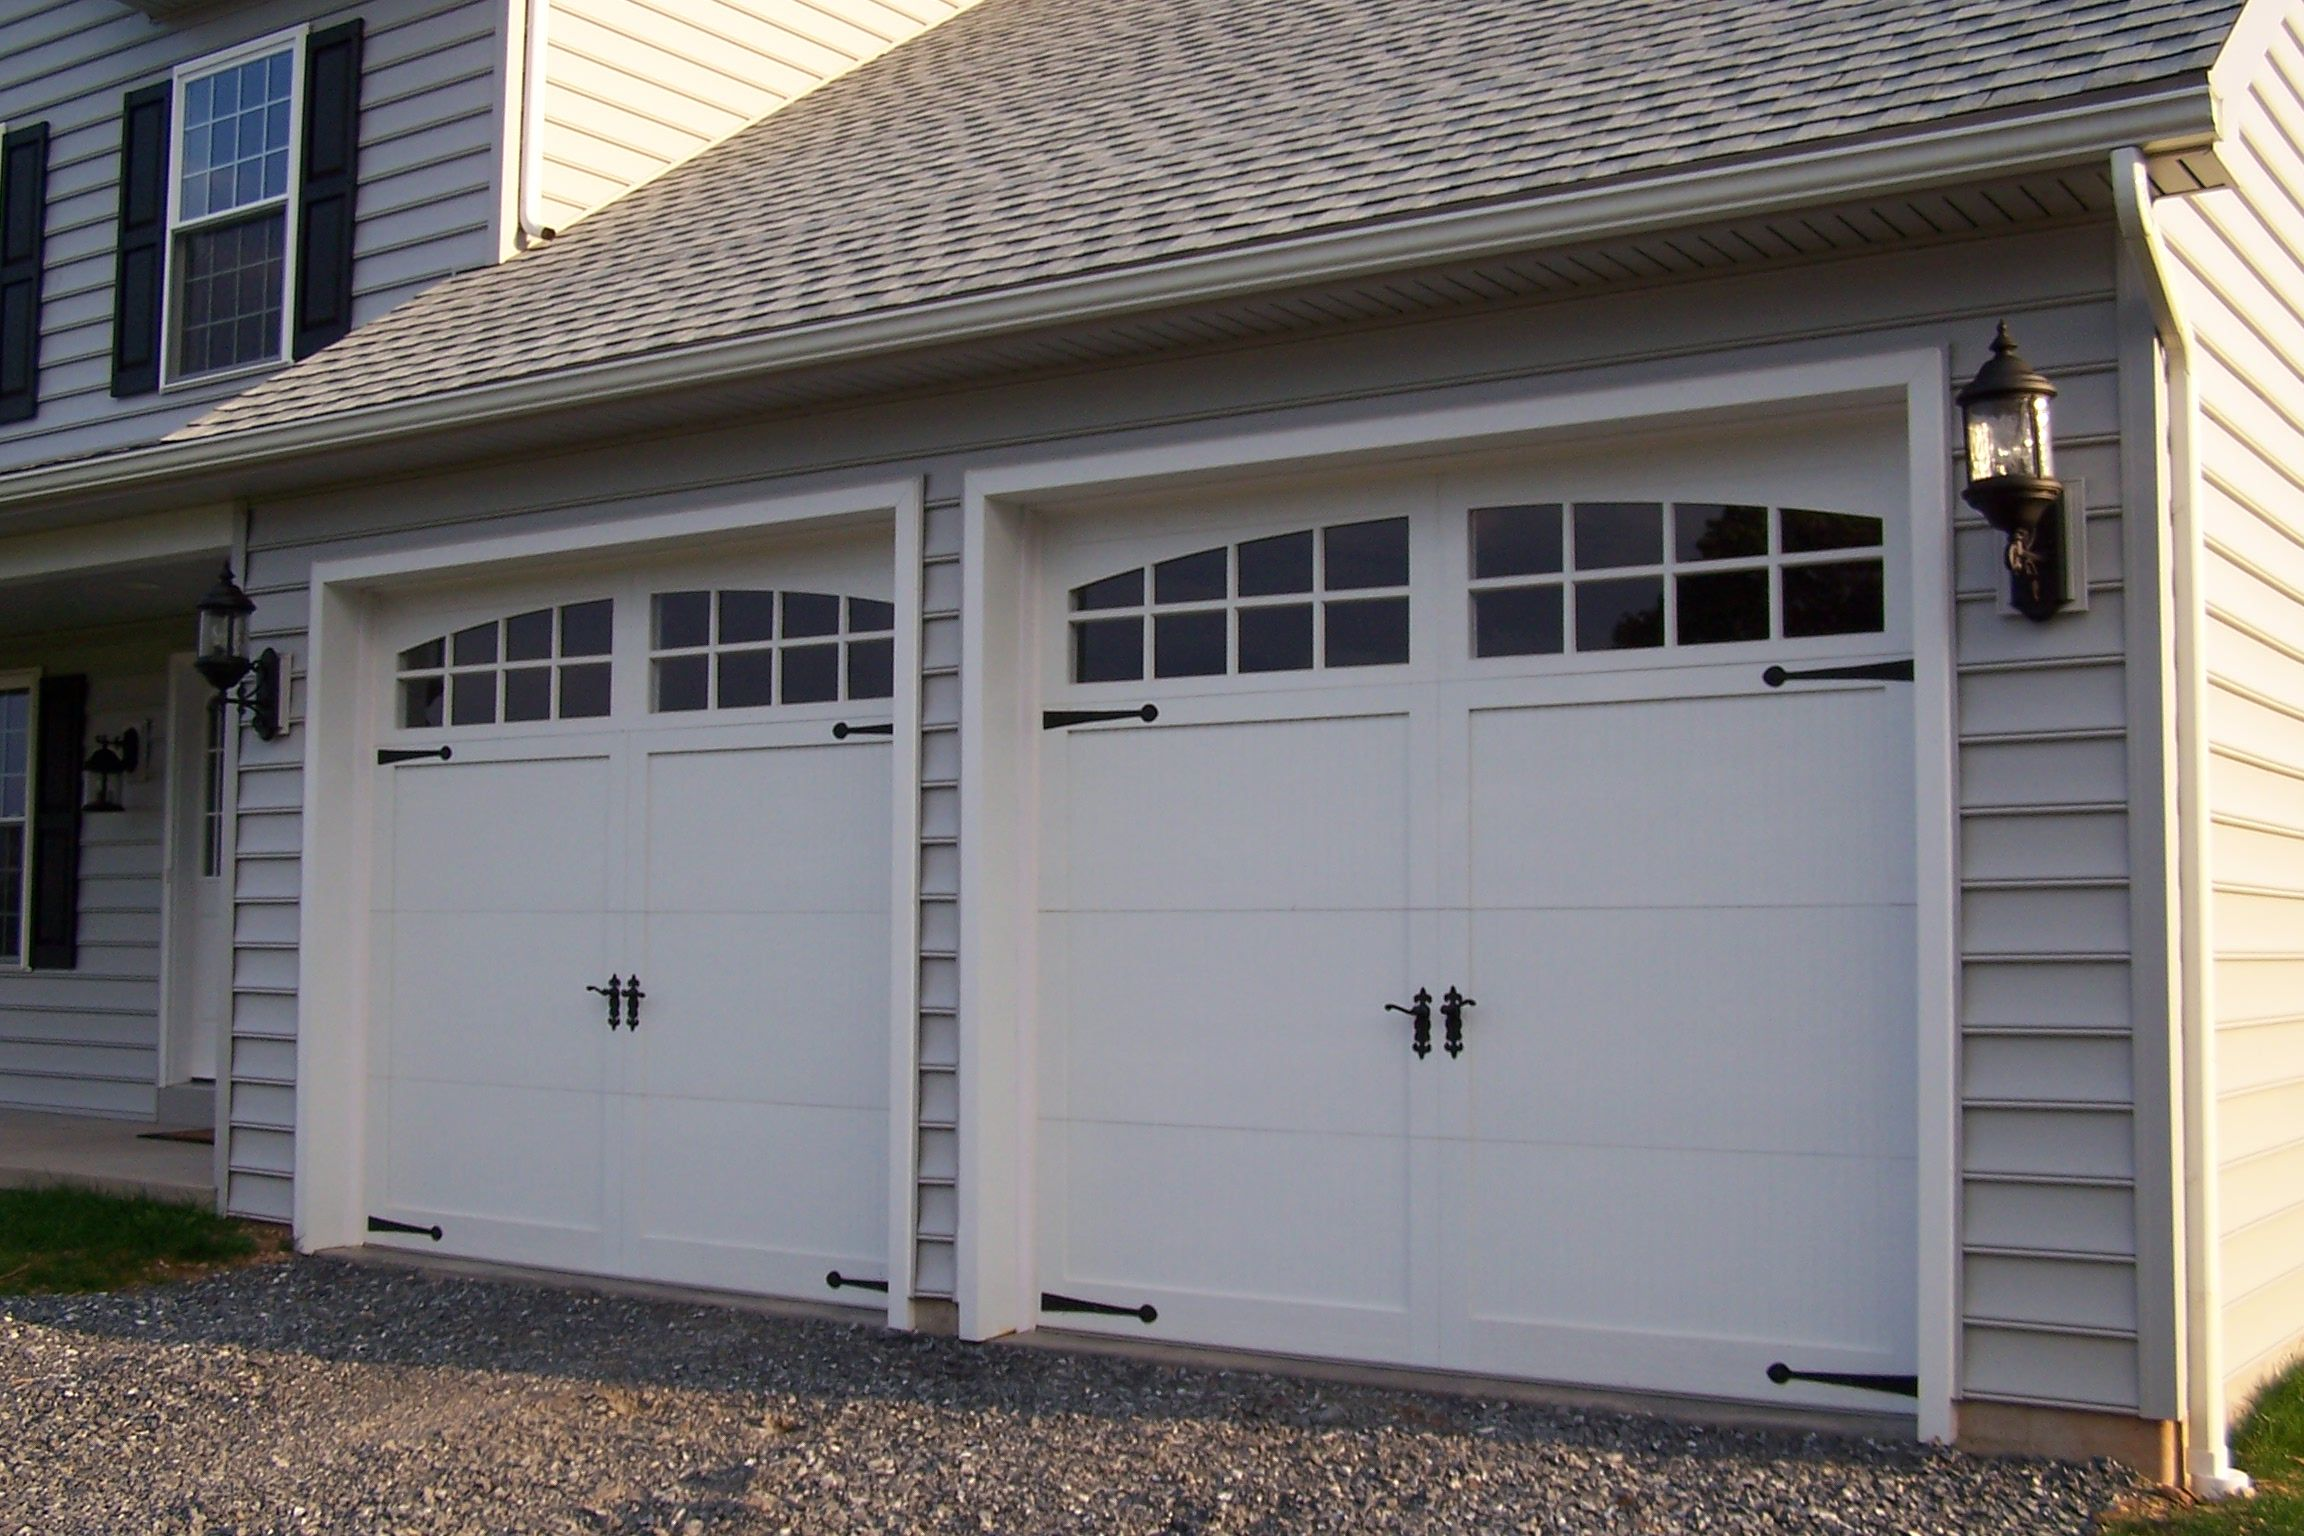 Classica northampton garage door white 9 x 8 no windows - Garage Doors